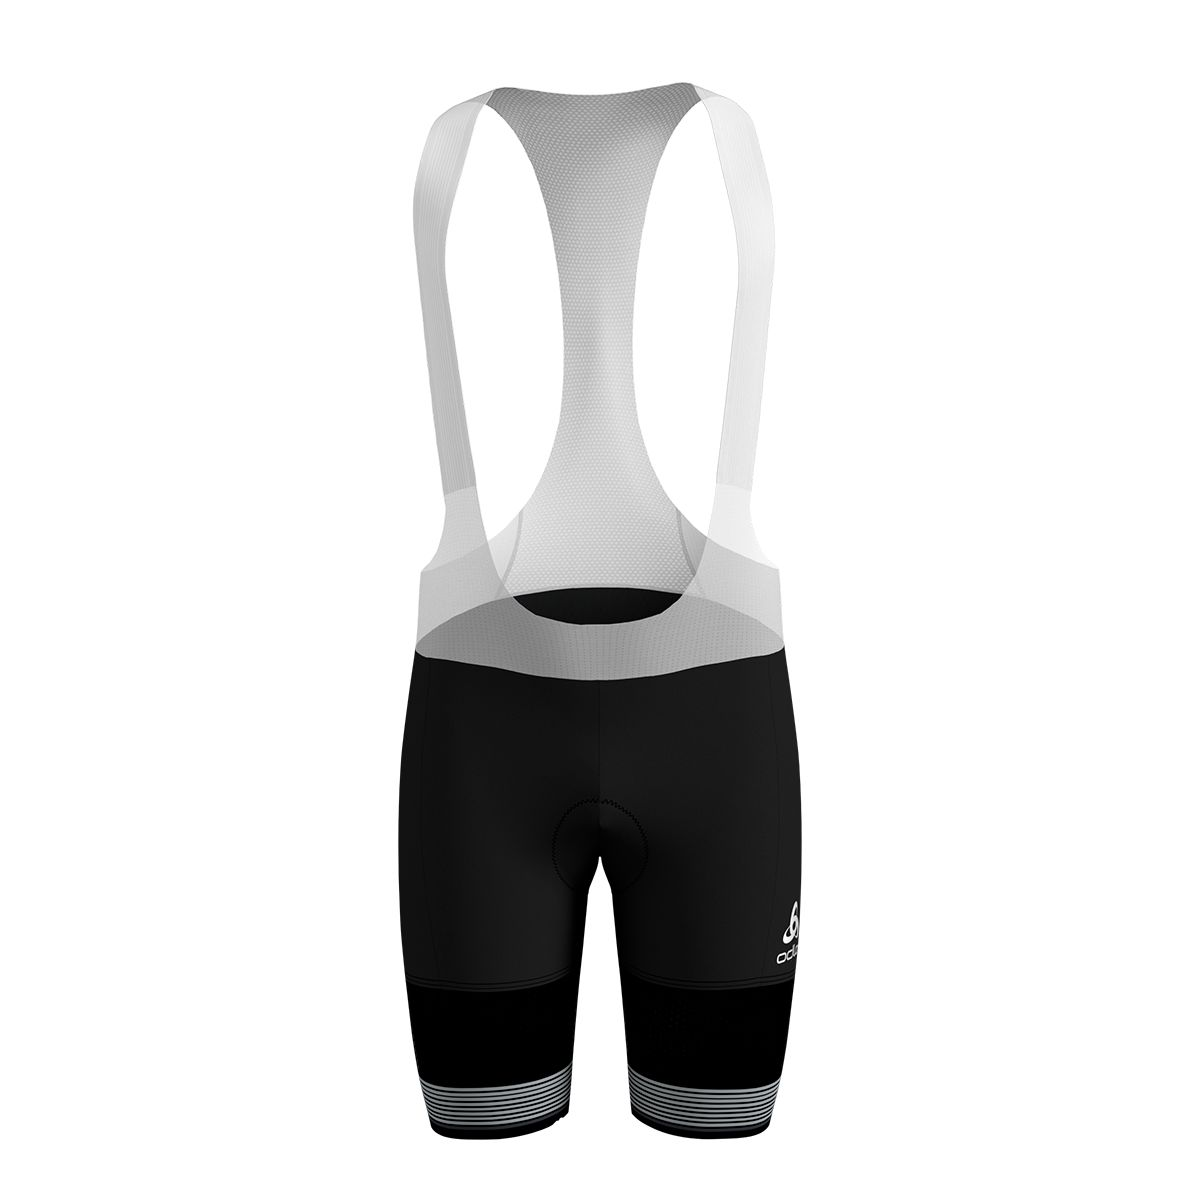 ZEROWEIGHT CERAMICOOL PRO Tights short suspenders for men